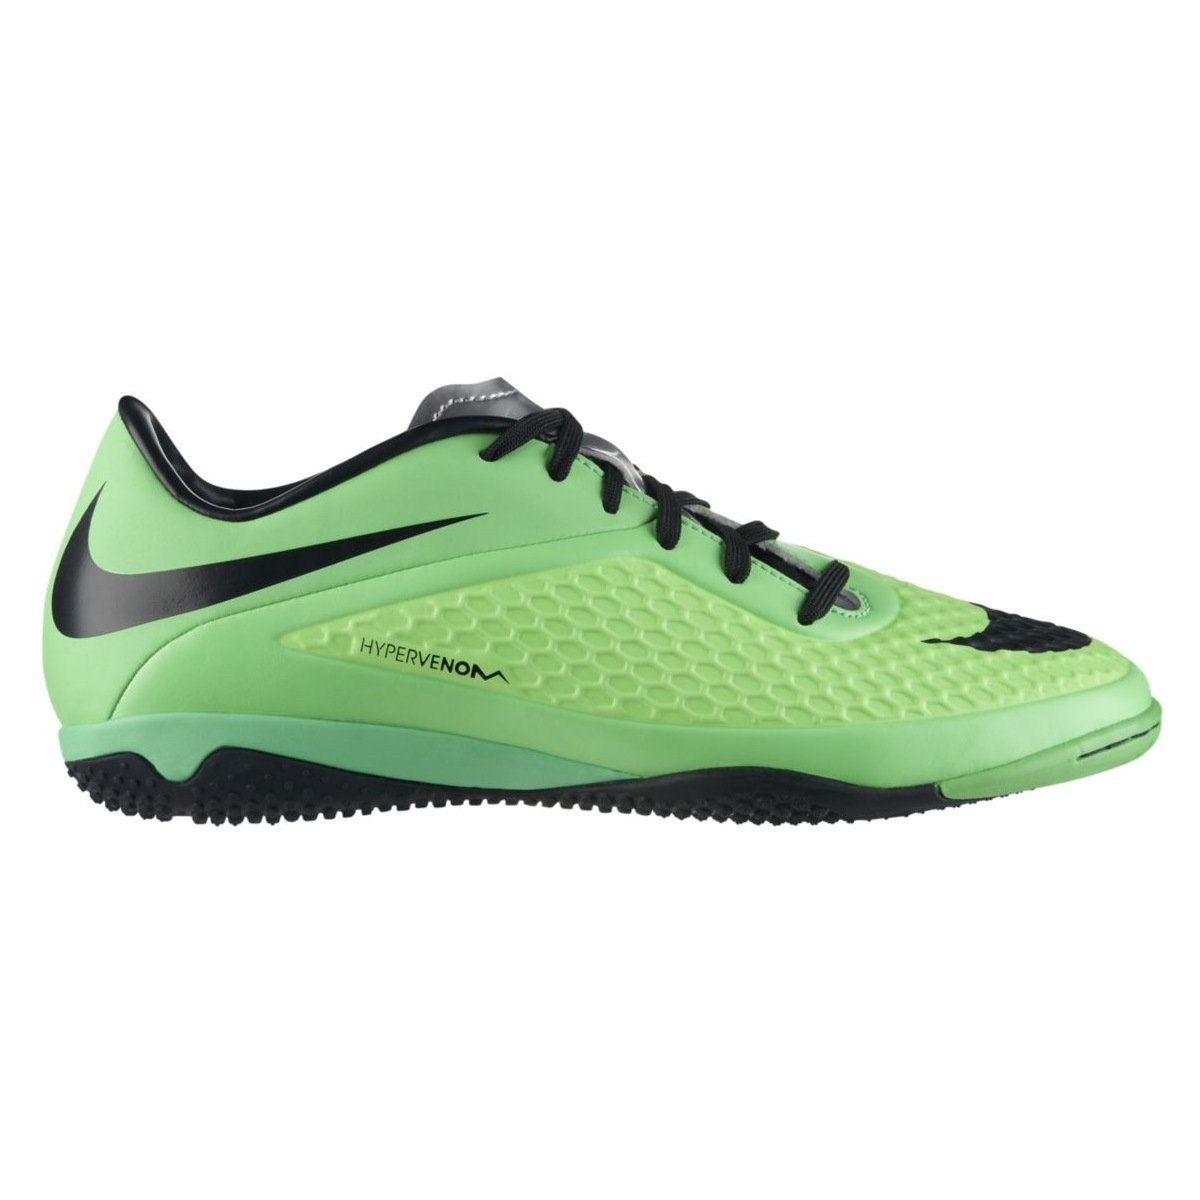 nike hypervenom phelon ic schuhe fu ballschuhe. Black Bedroom Furniture Sets. Home Design Ideas